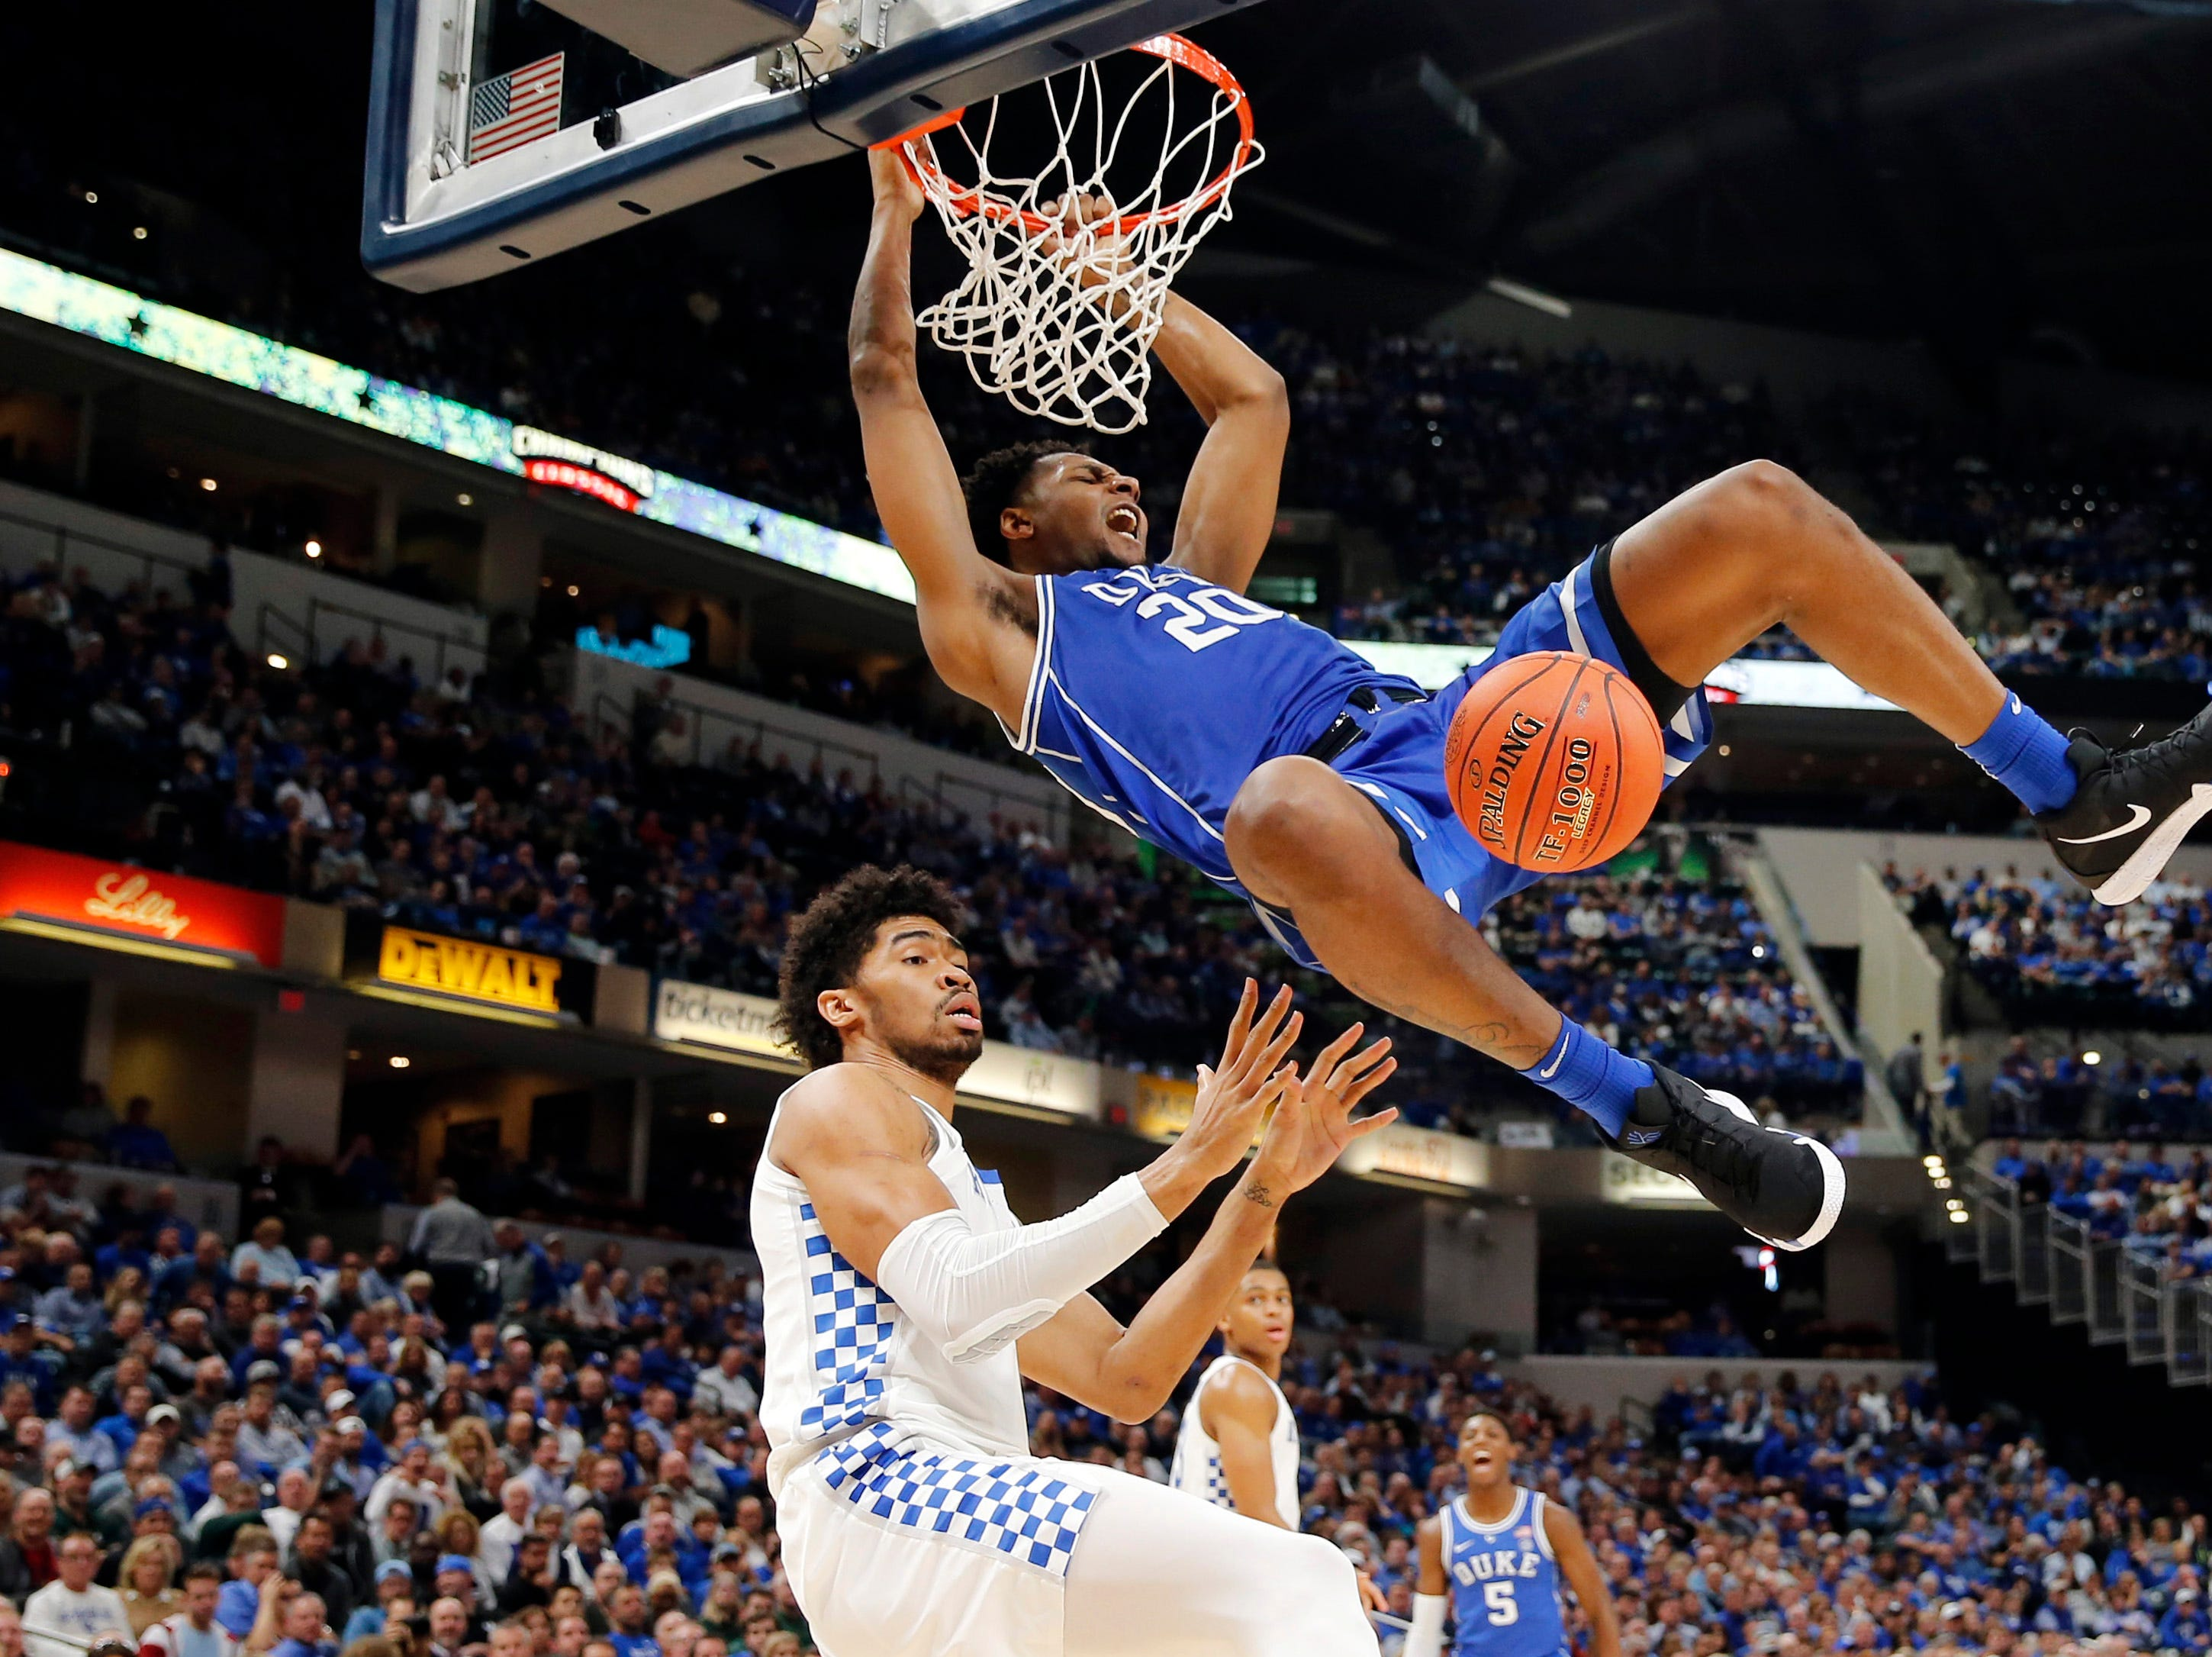 Nov. 6: Duke Blue Devils center Marques Bolden (20) dunks against Kentucky Wildcats forward Nick Richards (4) in the second half of the Champions Classic.